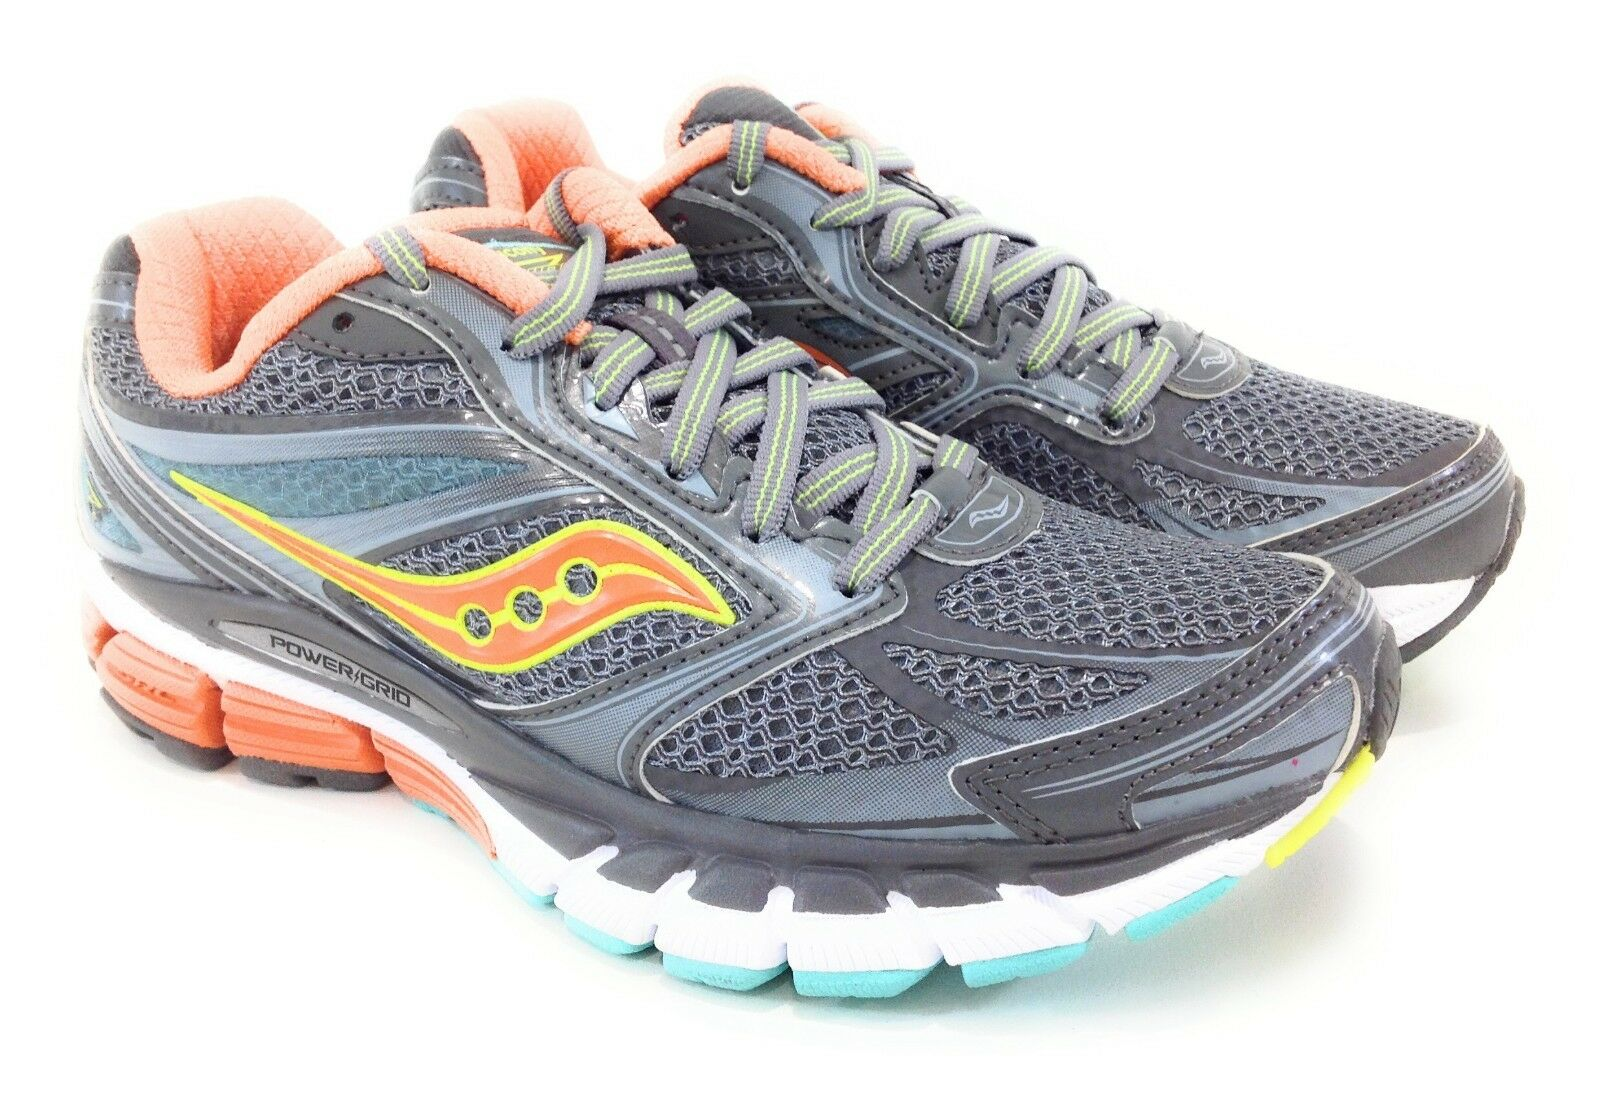 Saucony Womens Guide 8 Size 5.5 Grey Orange Blue Aqua New in Box